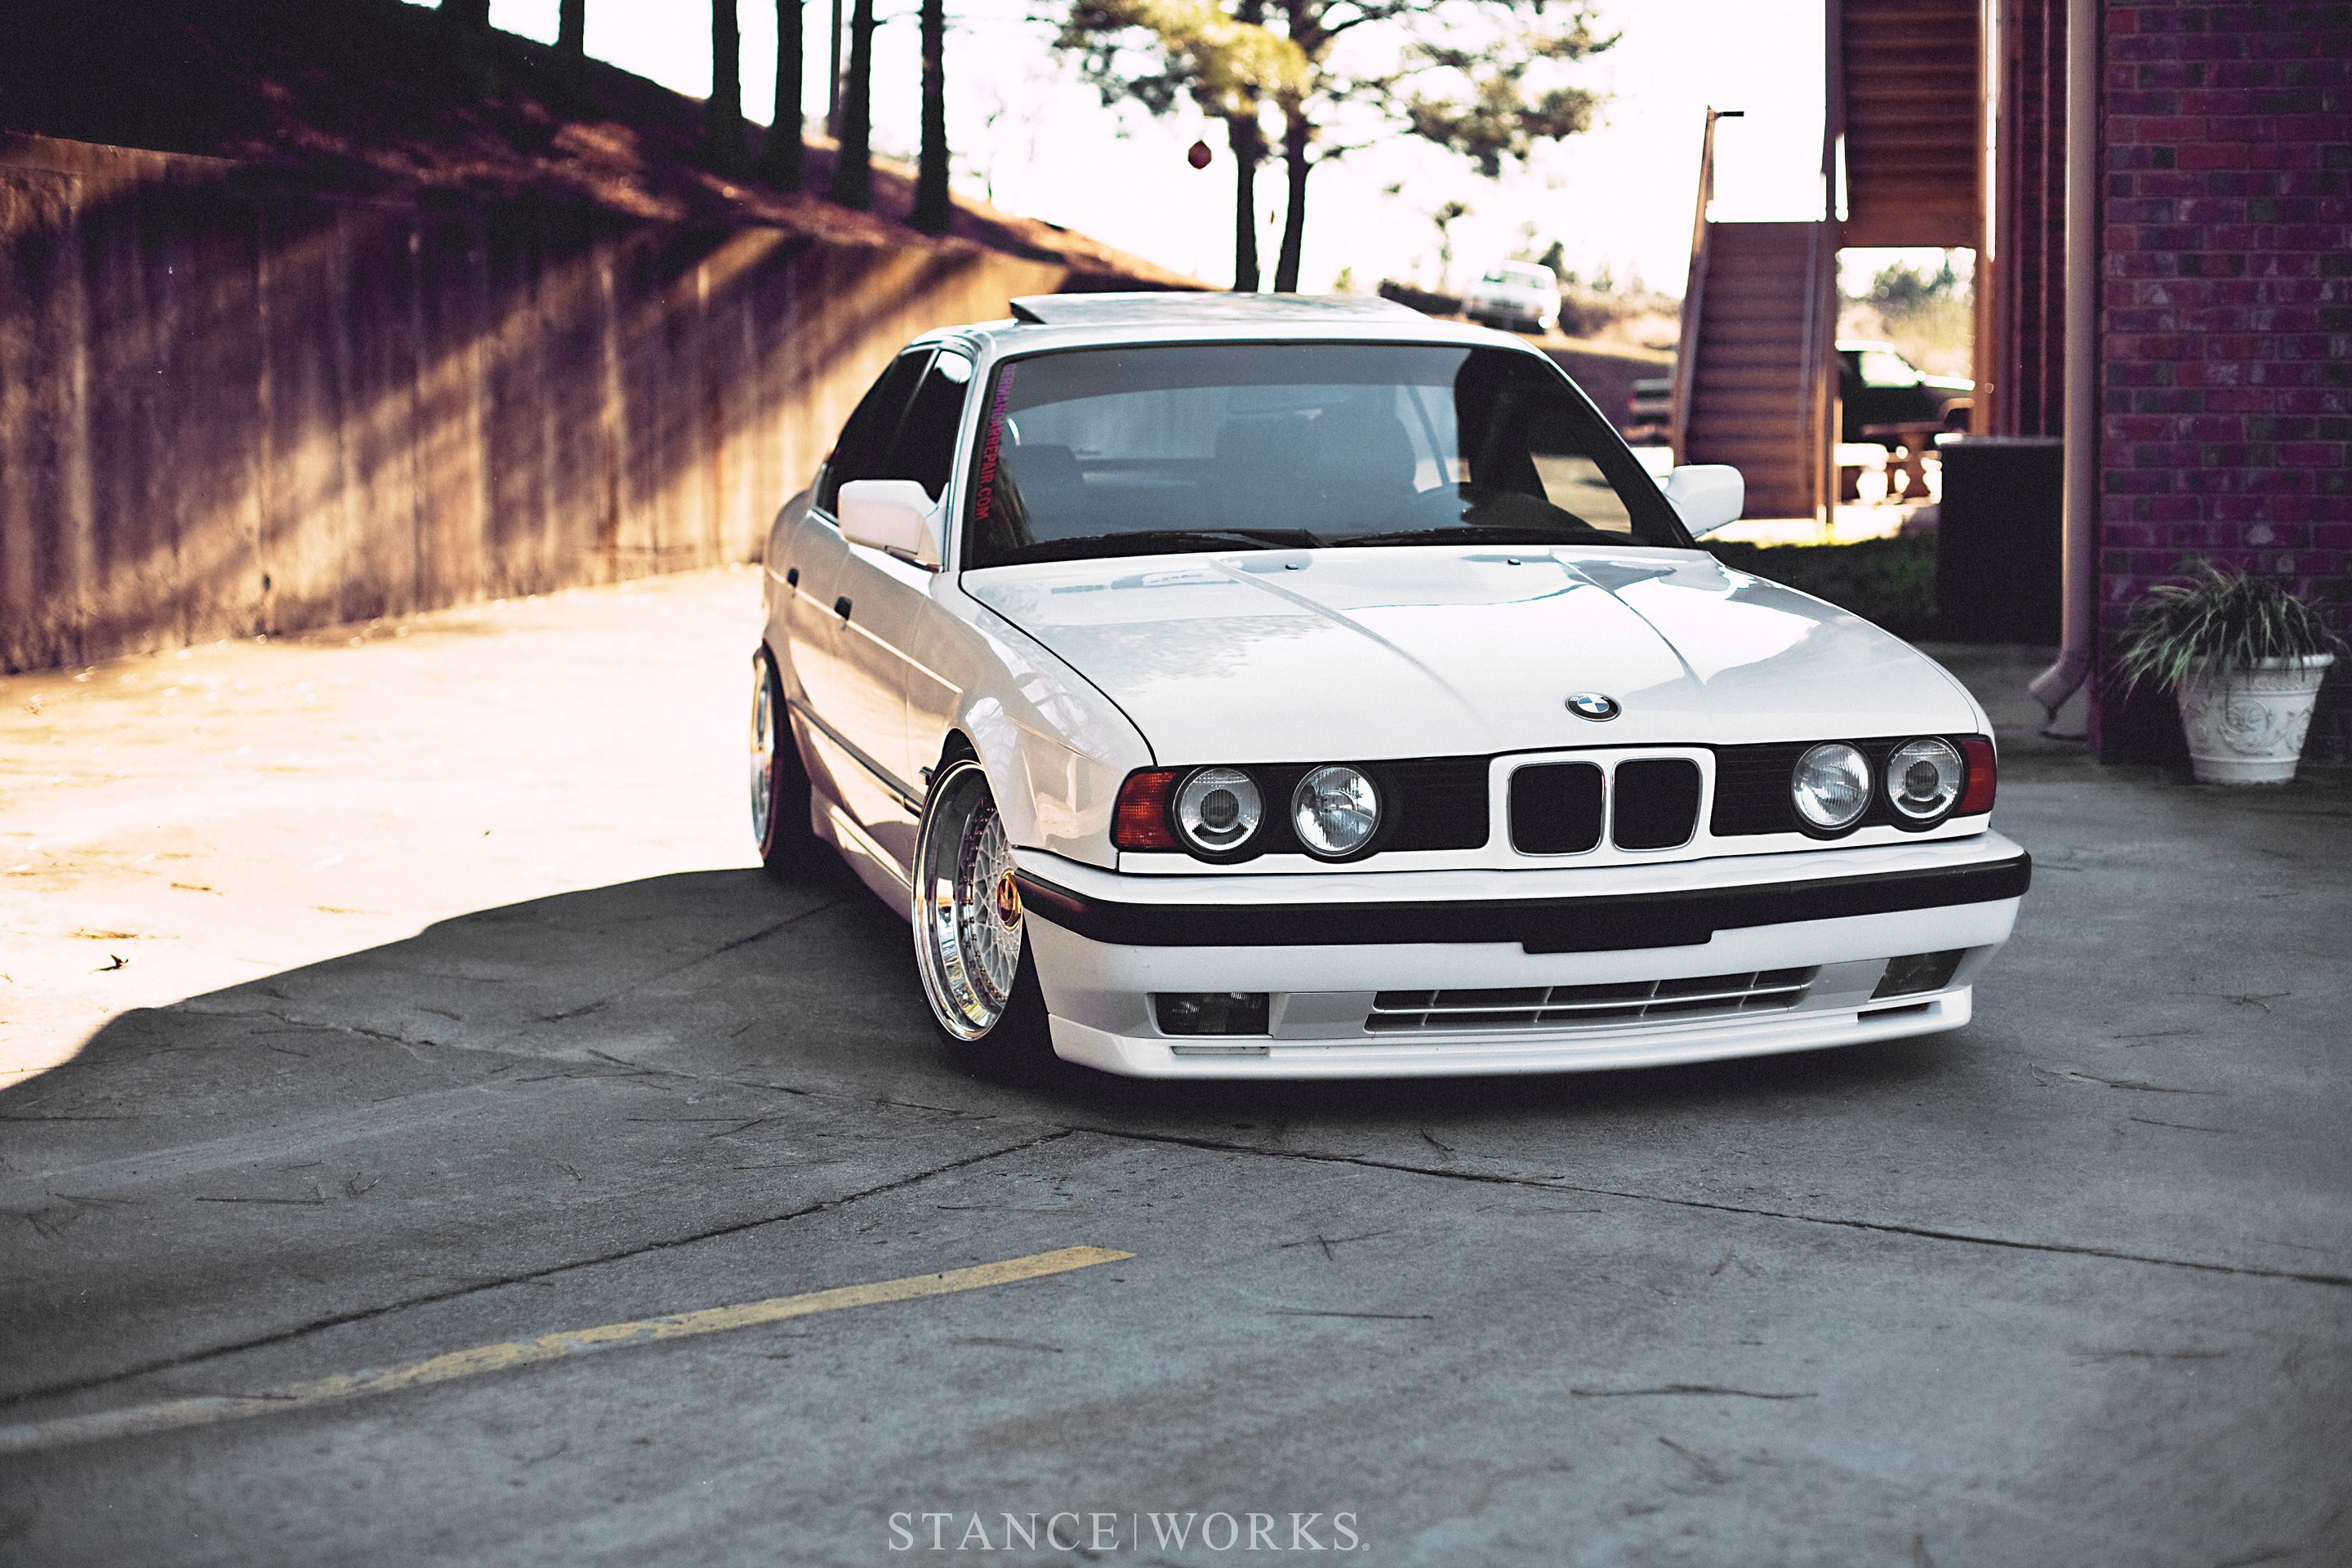 1995 bmw e34 540i bmw 5 series e34 1988 1996 sold green in color automobiles that i once owned or have now pinterest bmw and cars